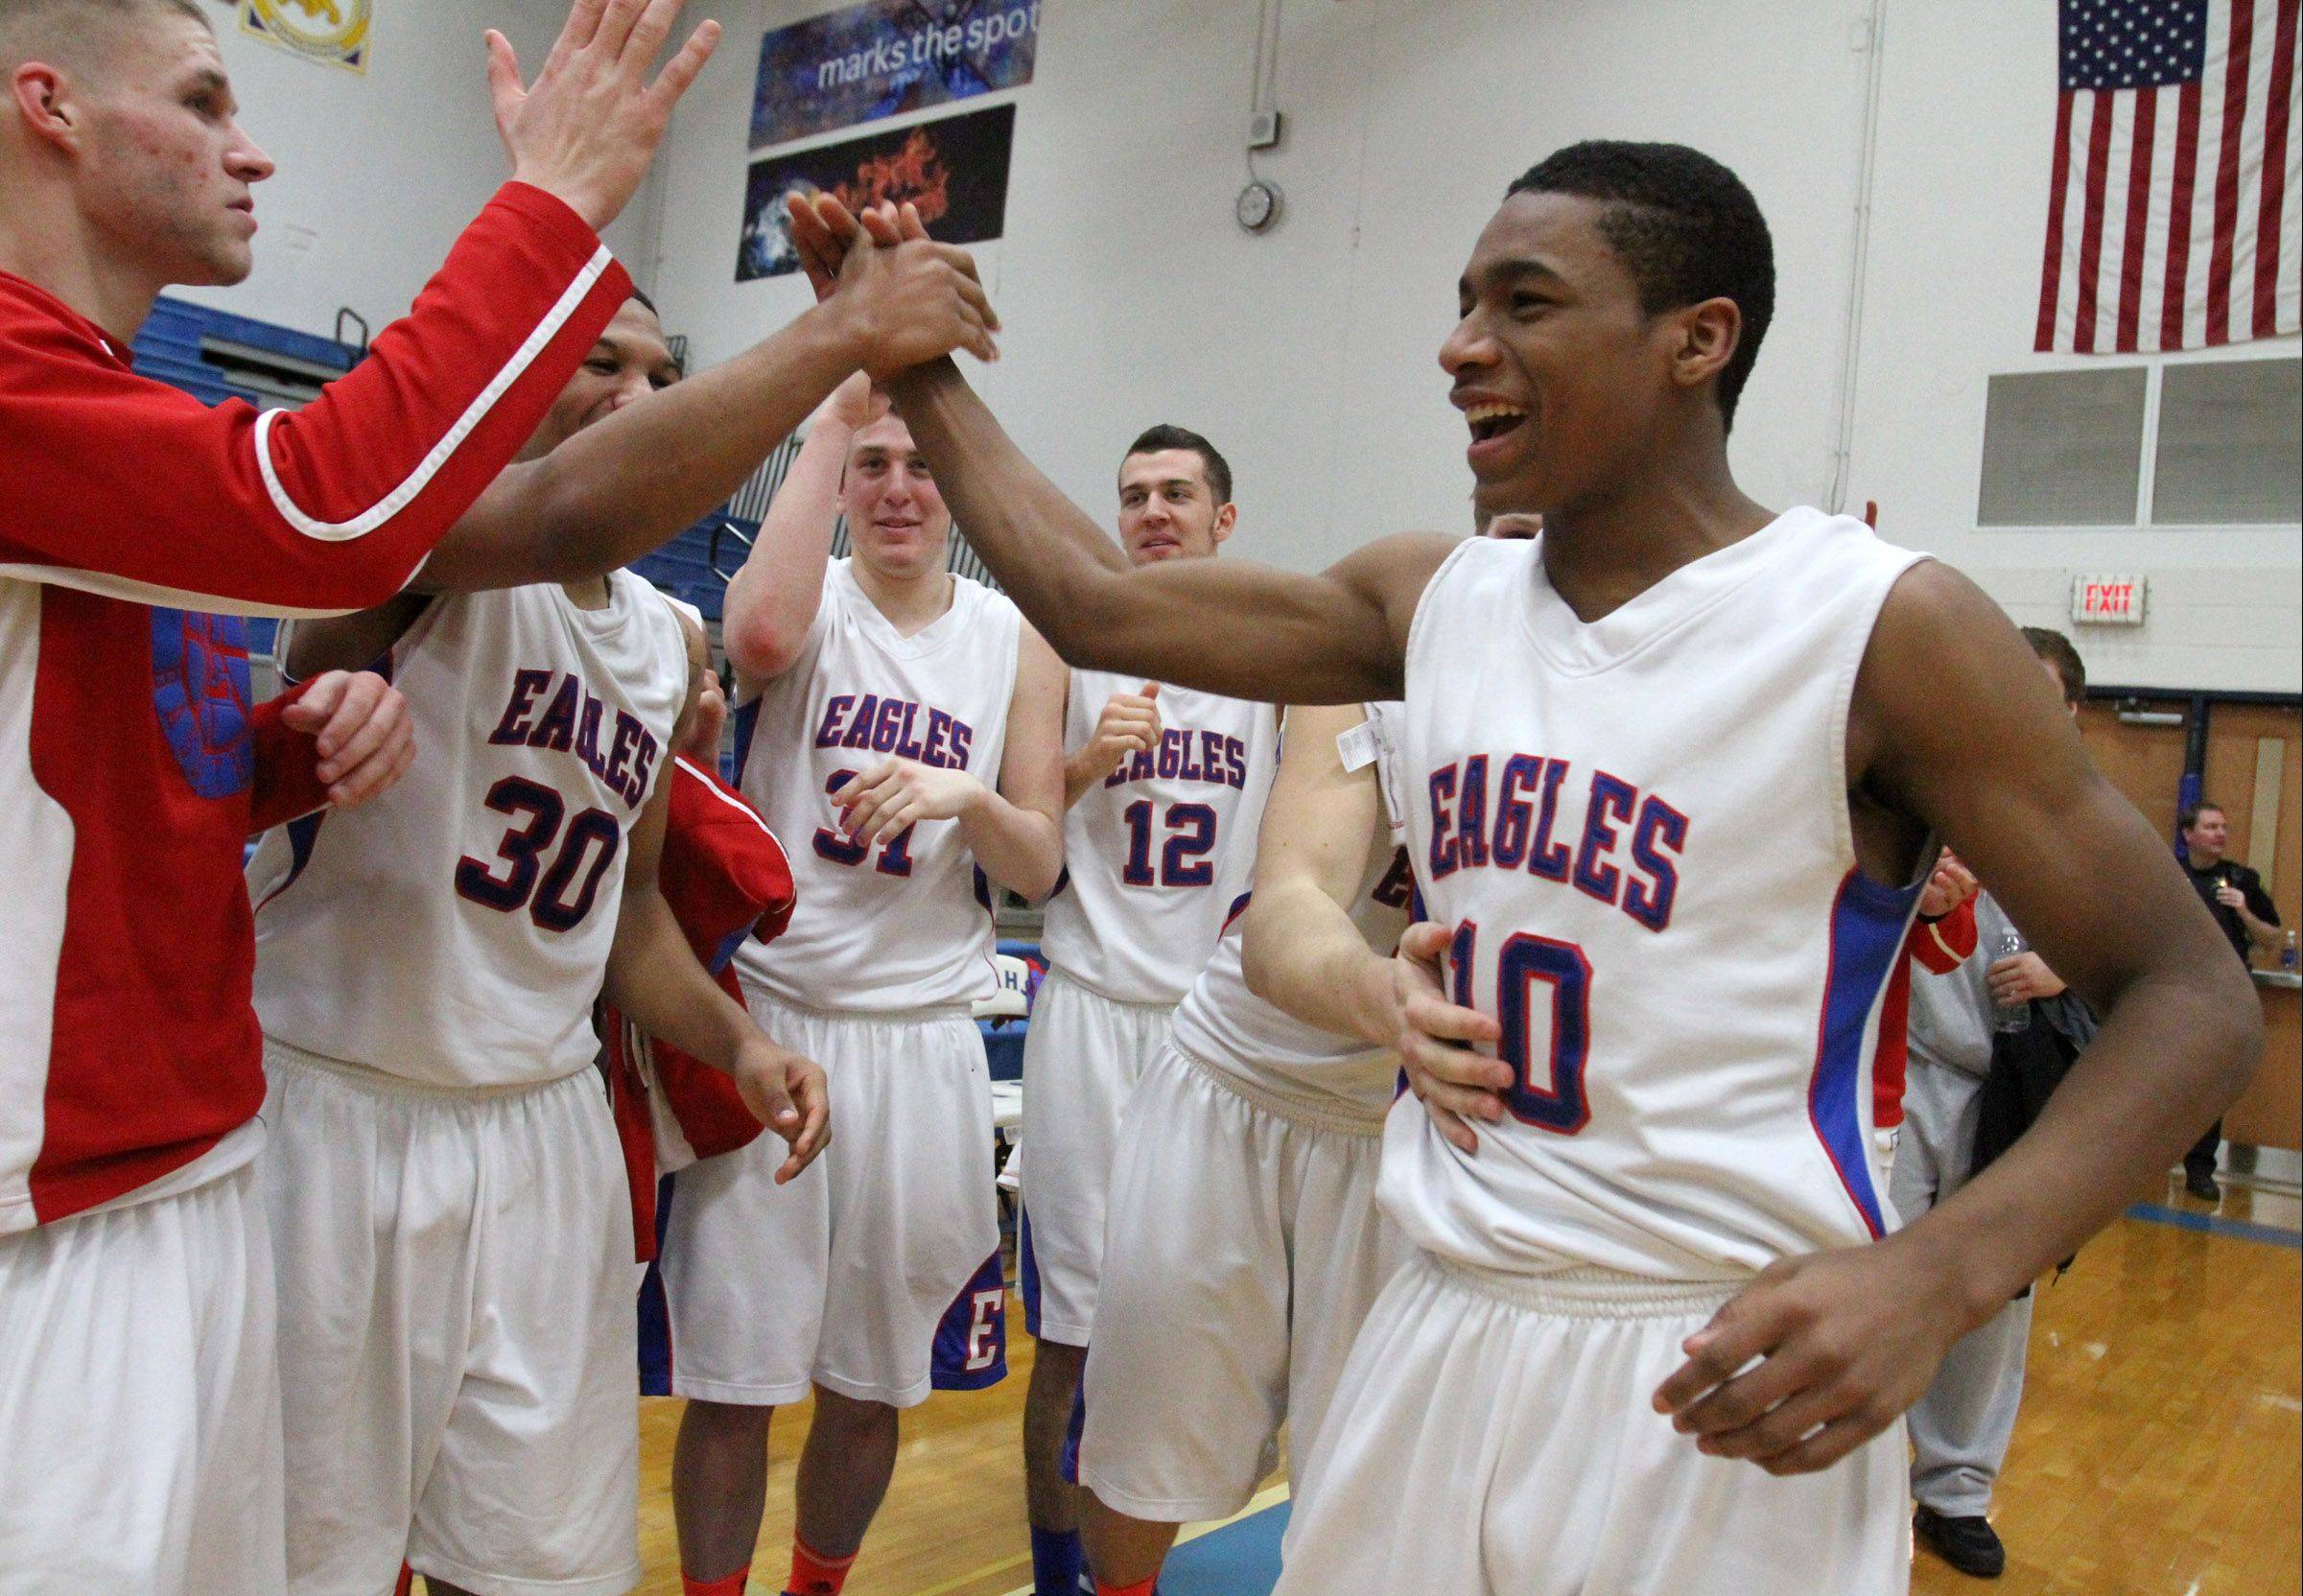 Lakes' Andrew Spencer, right, gets a high-five from teammates after the Eagles won the Class 3A regional final at Vernon Hills on Friday.